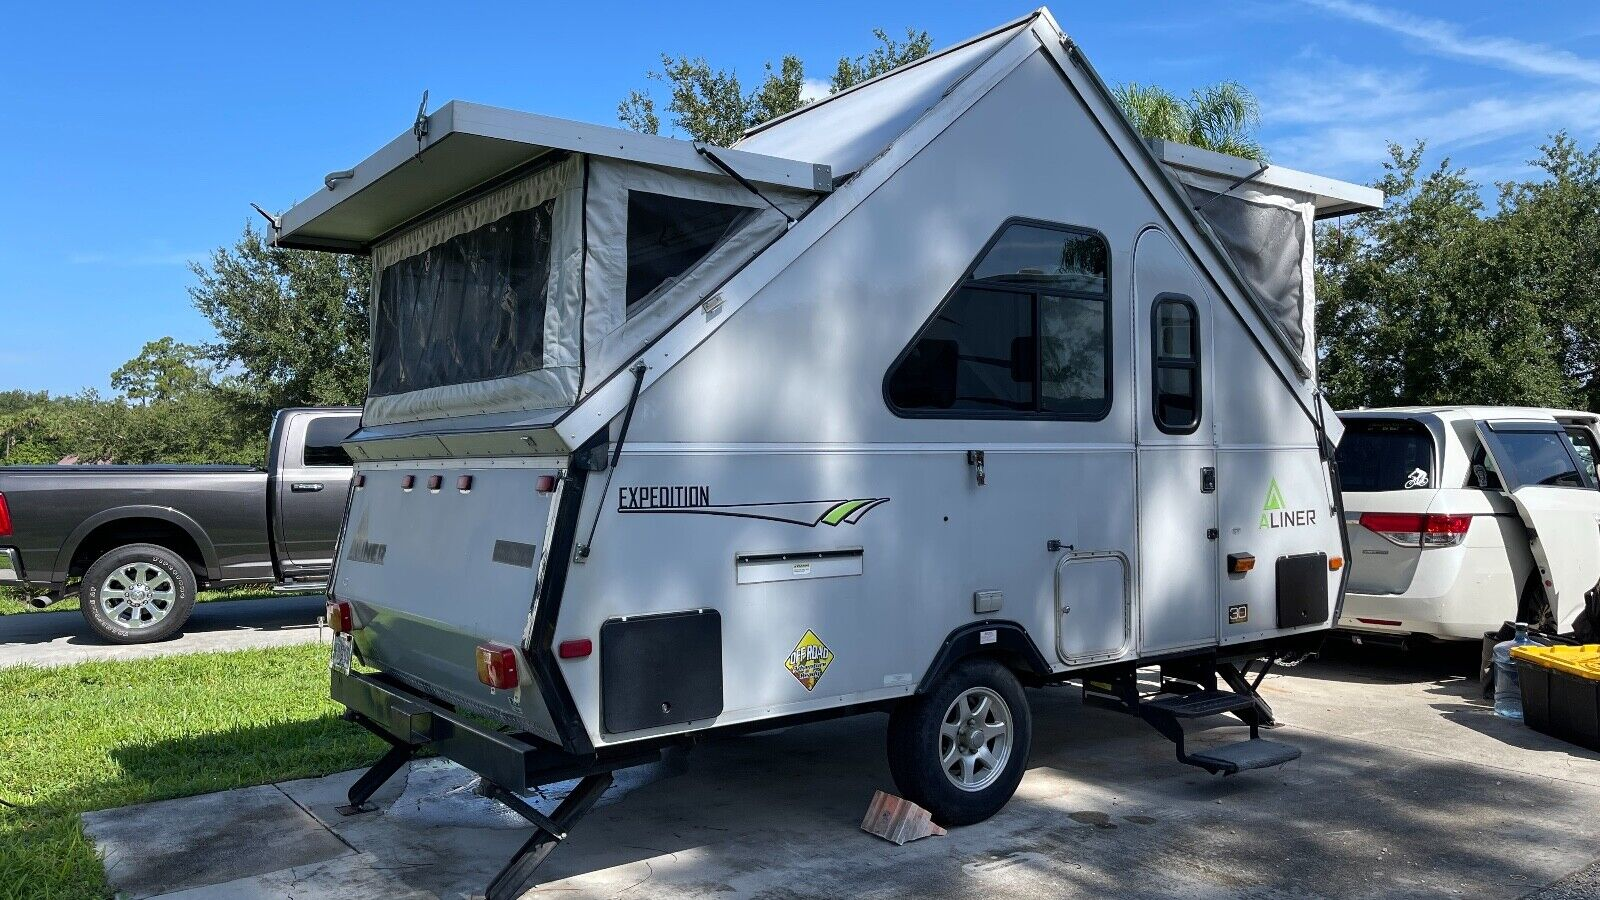 2015 ALINER Expedition Folding Trailer with A/C and Toilet